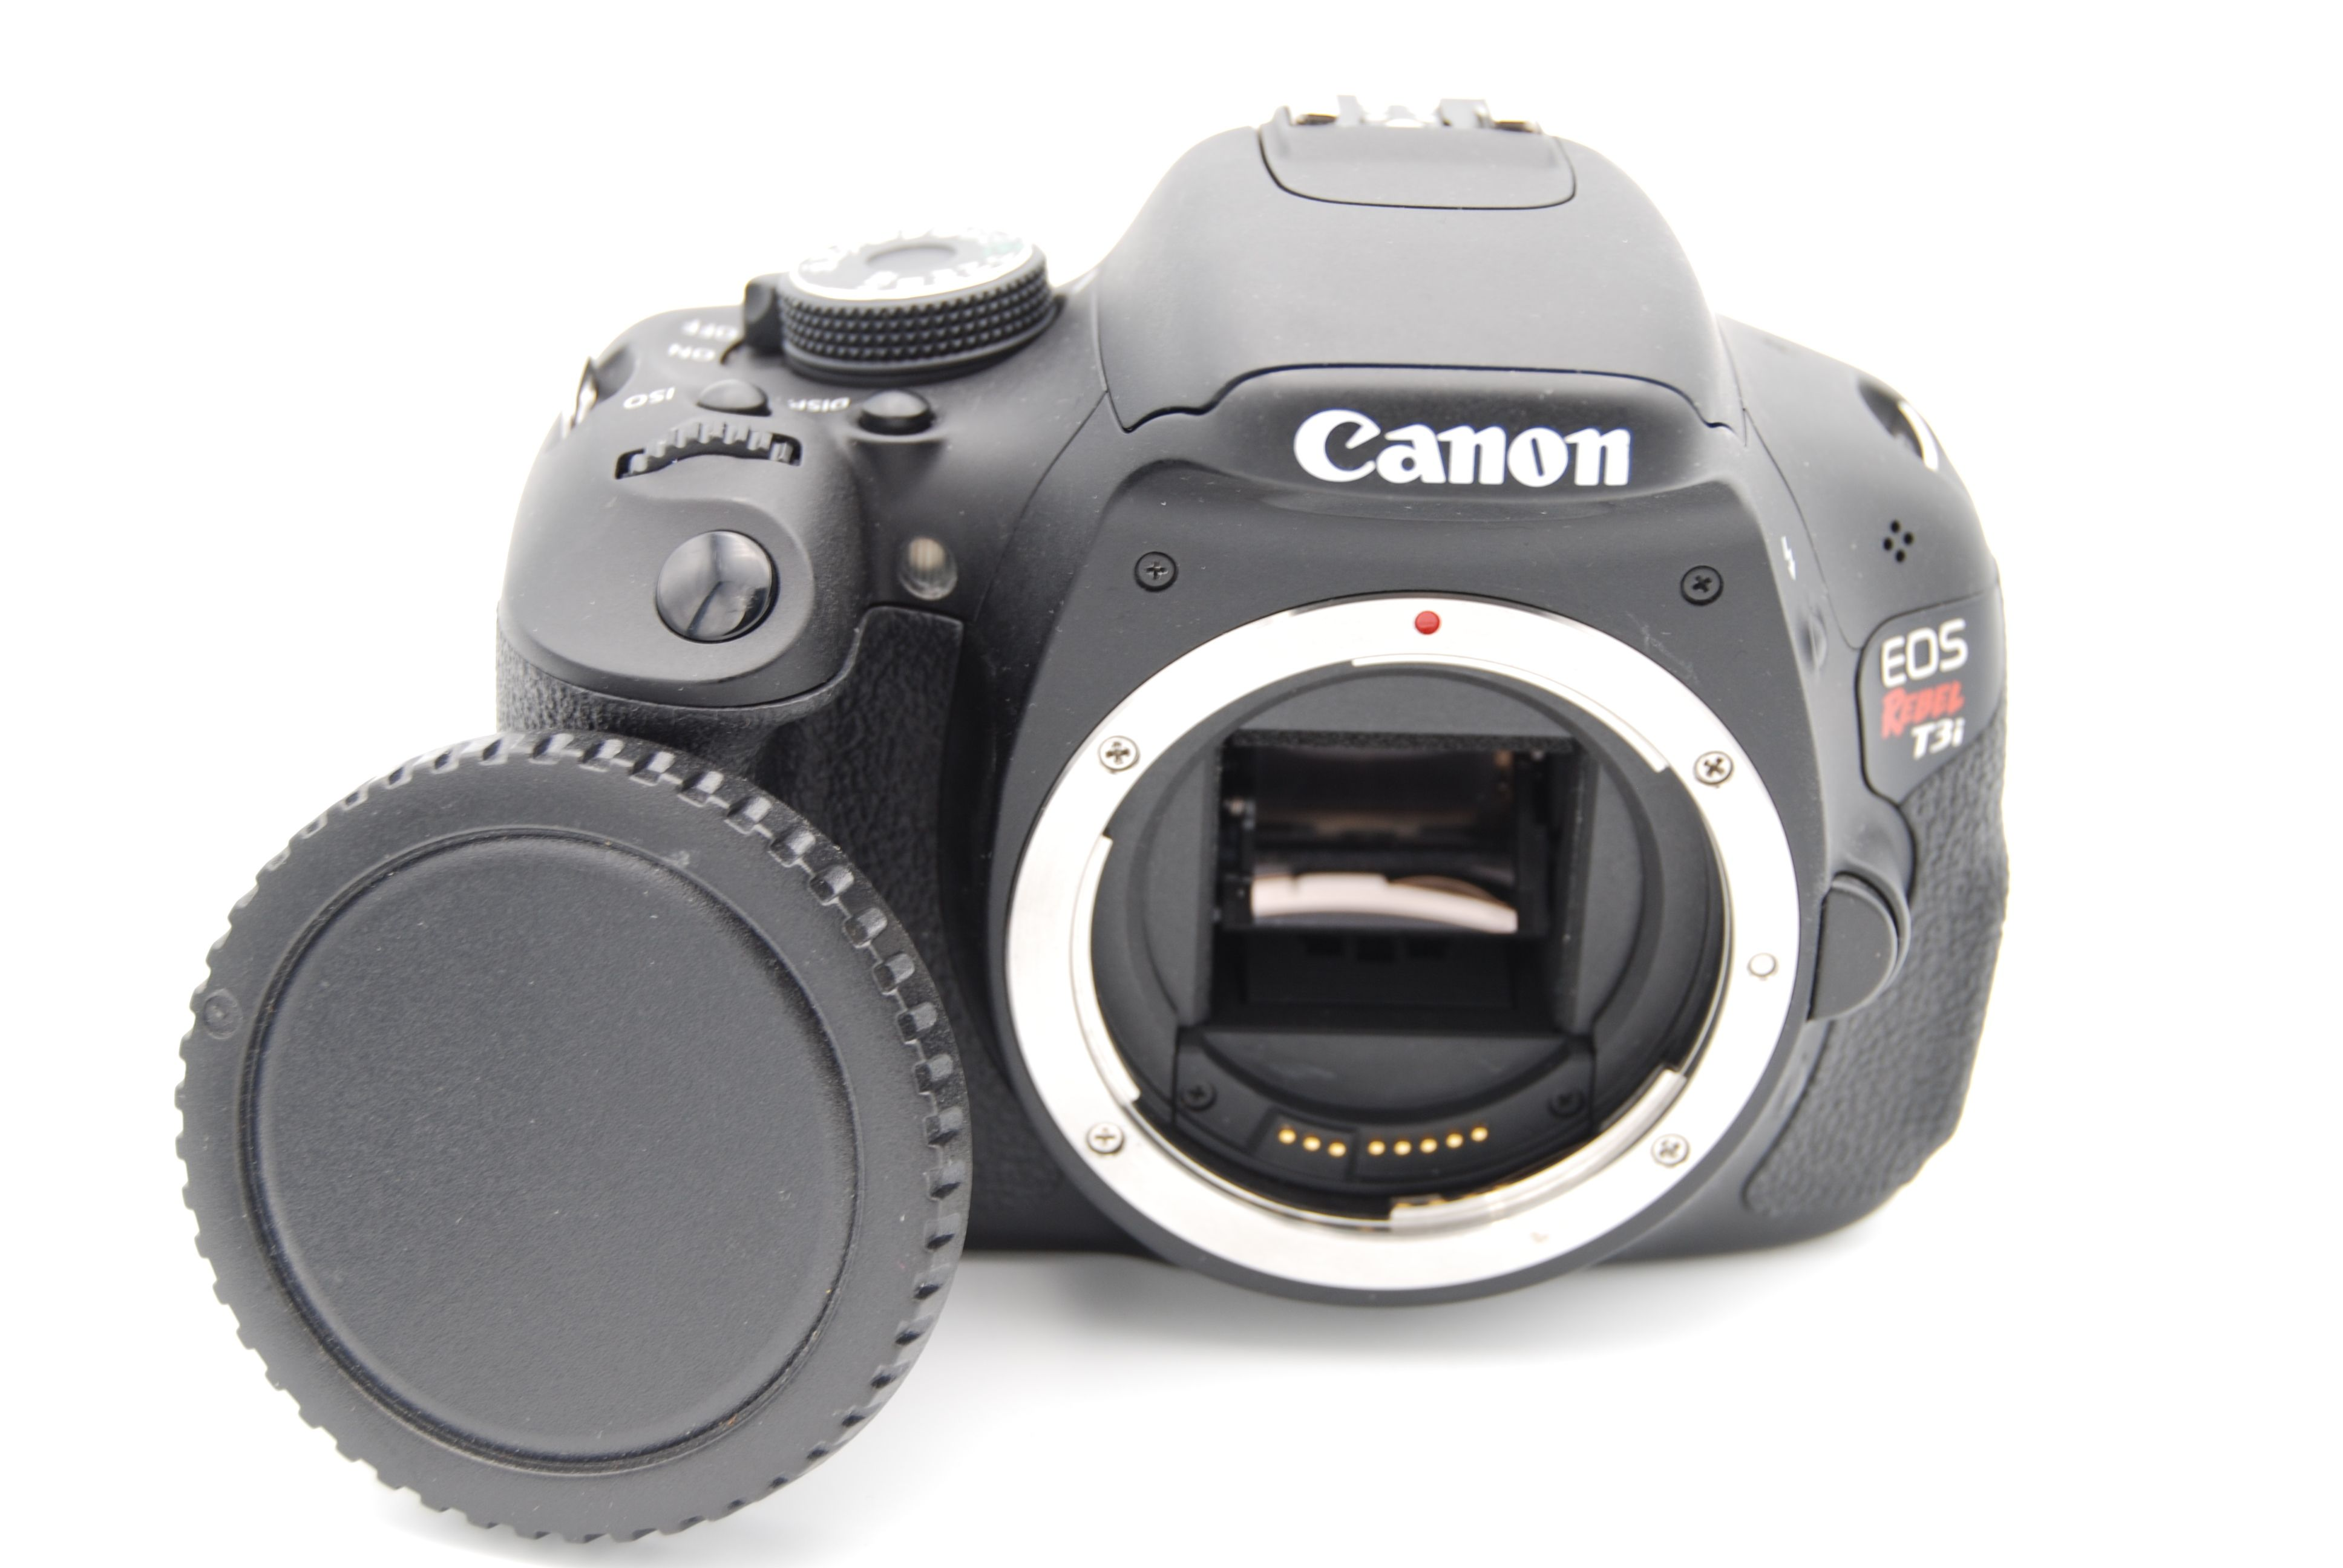 Details about Canon EOS 600D (EOS Rebel T3i / EOS Kiss X5) 18MP 3''SCREEN  DSLR CAMERA